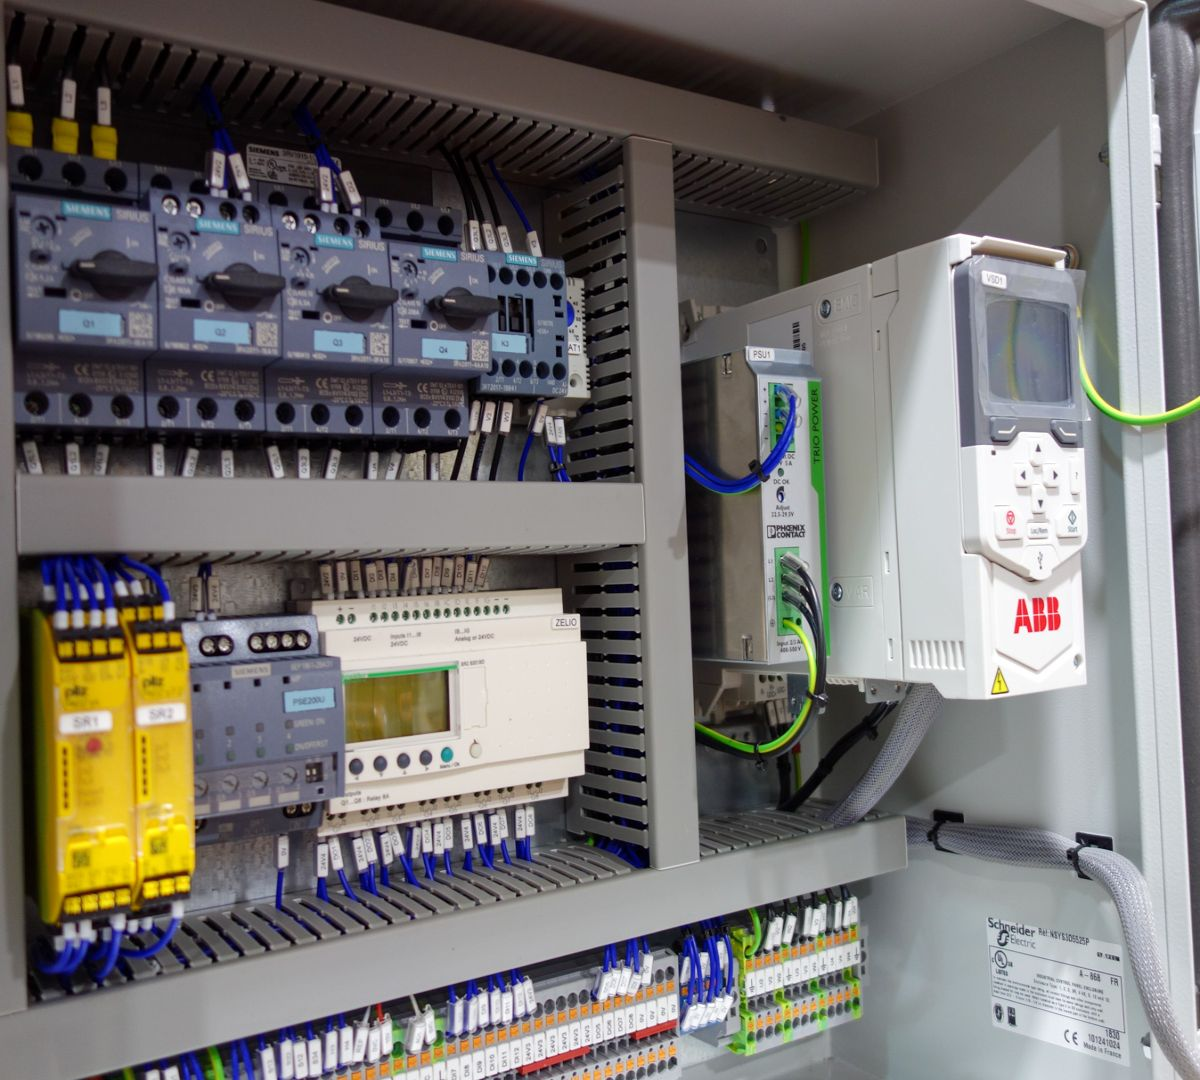 ABB 2.2kW variable speed drive